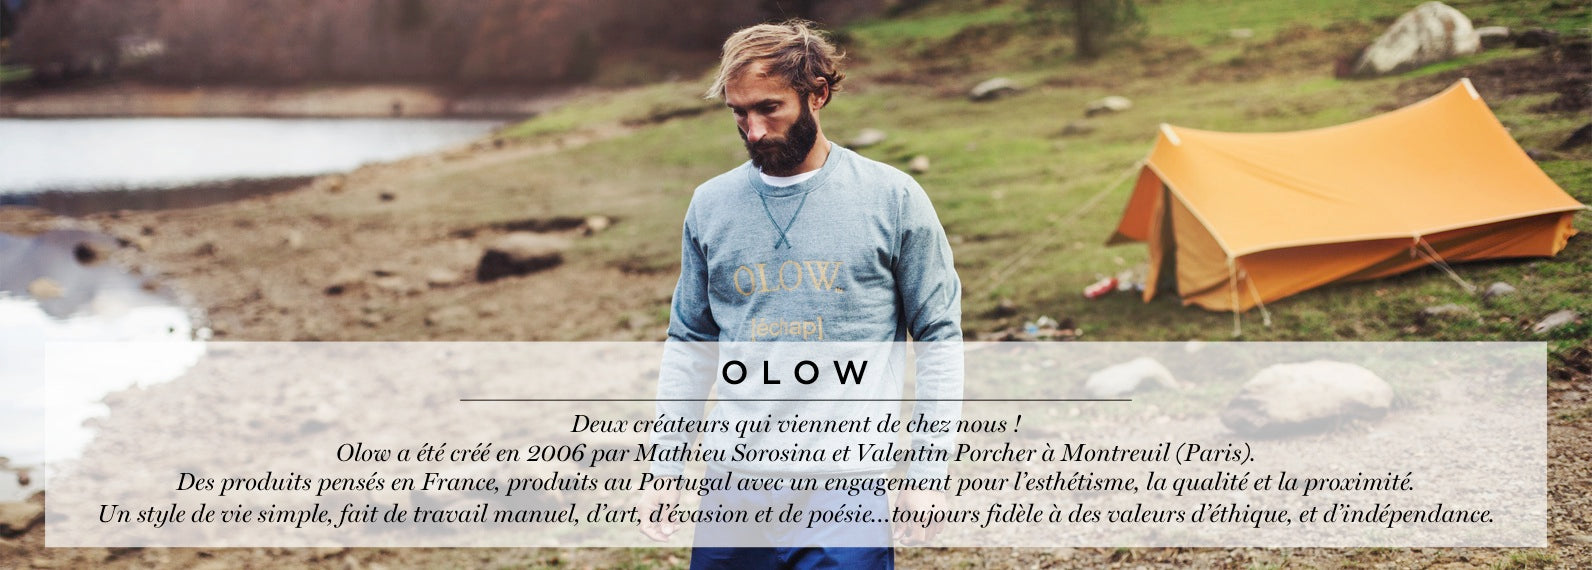 collection olow homme sweat chemise t shirt versailles